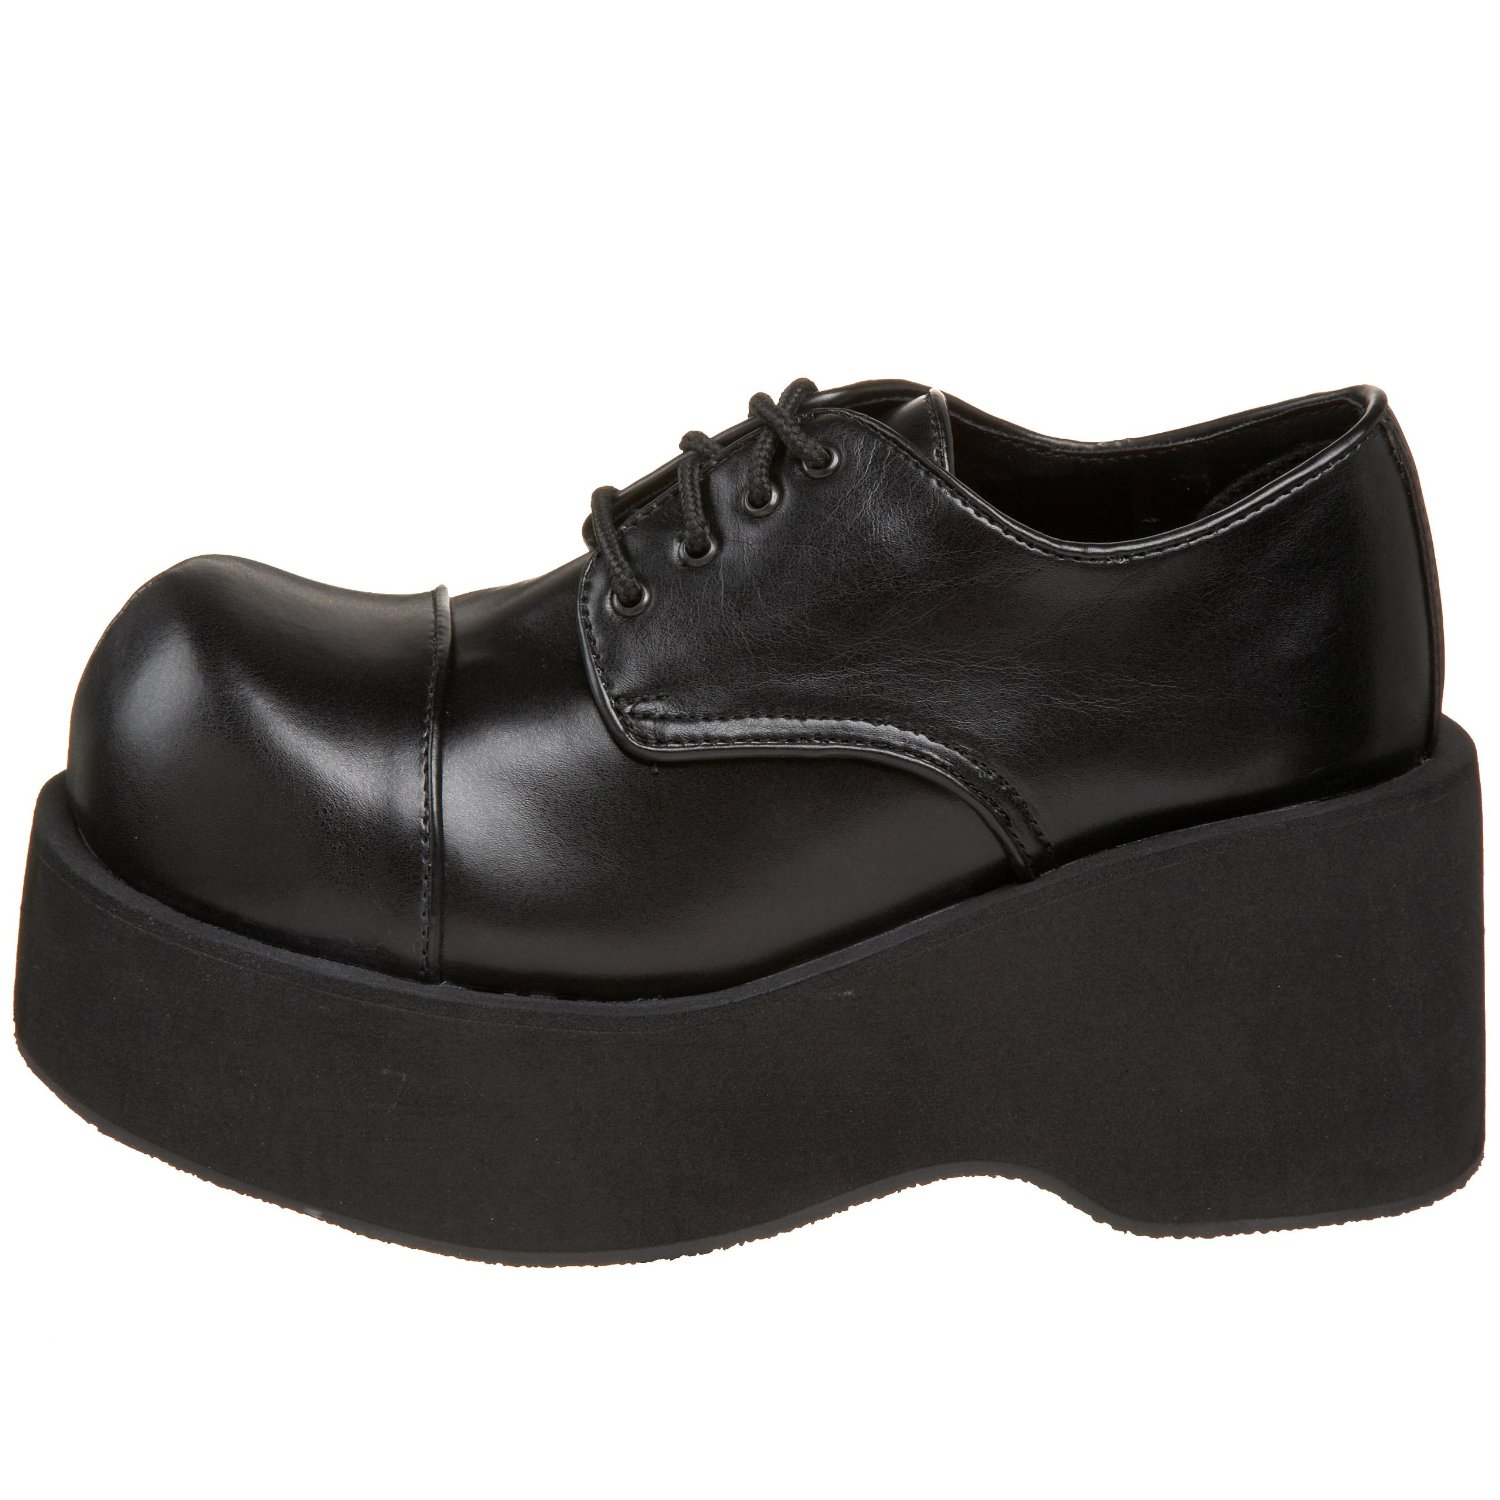 Massive vegan lace up platform shoes